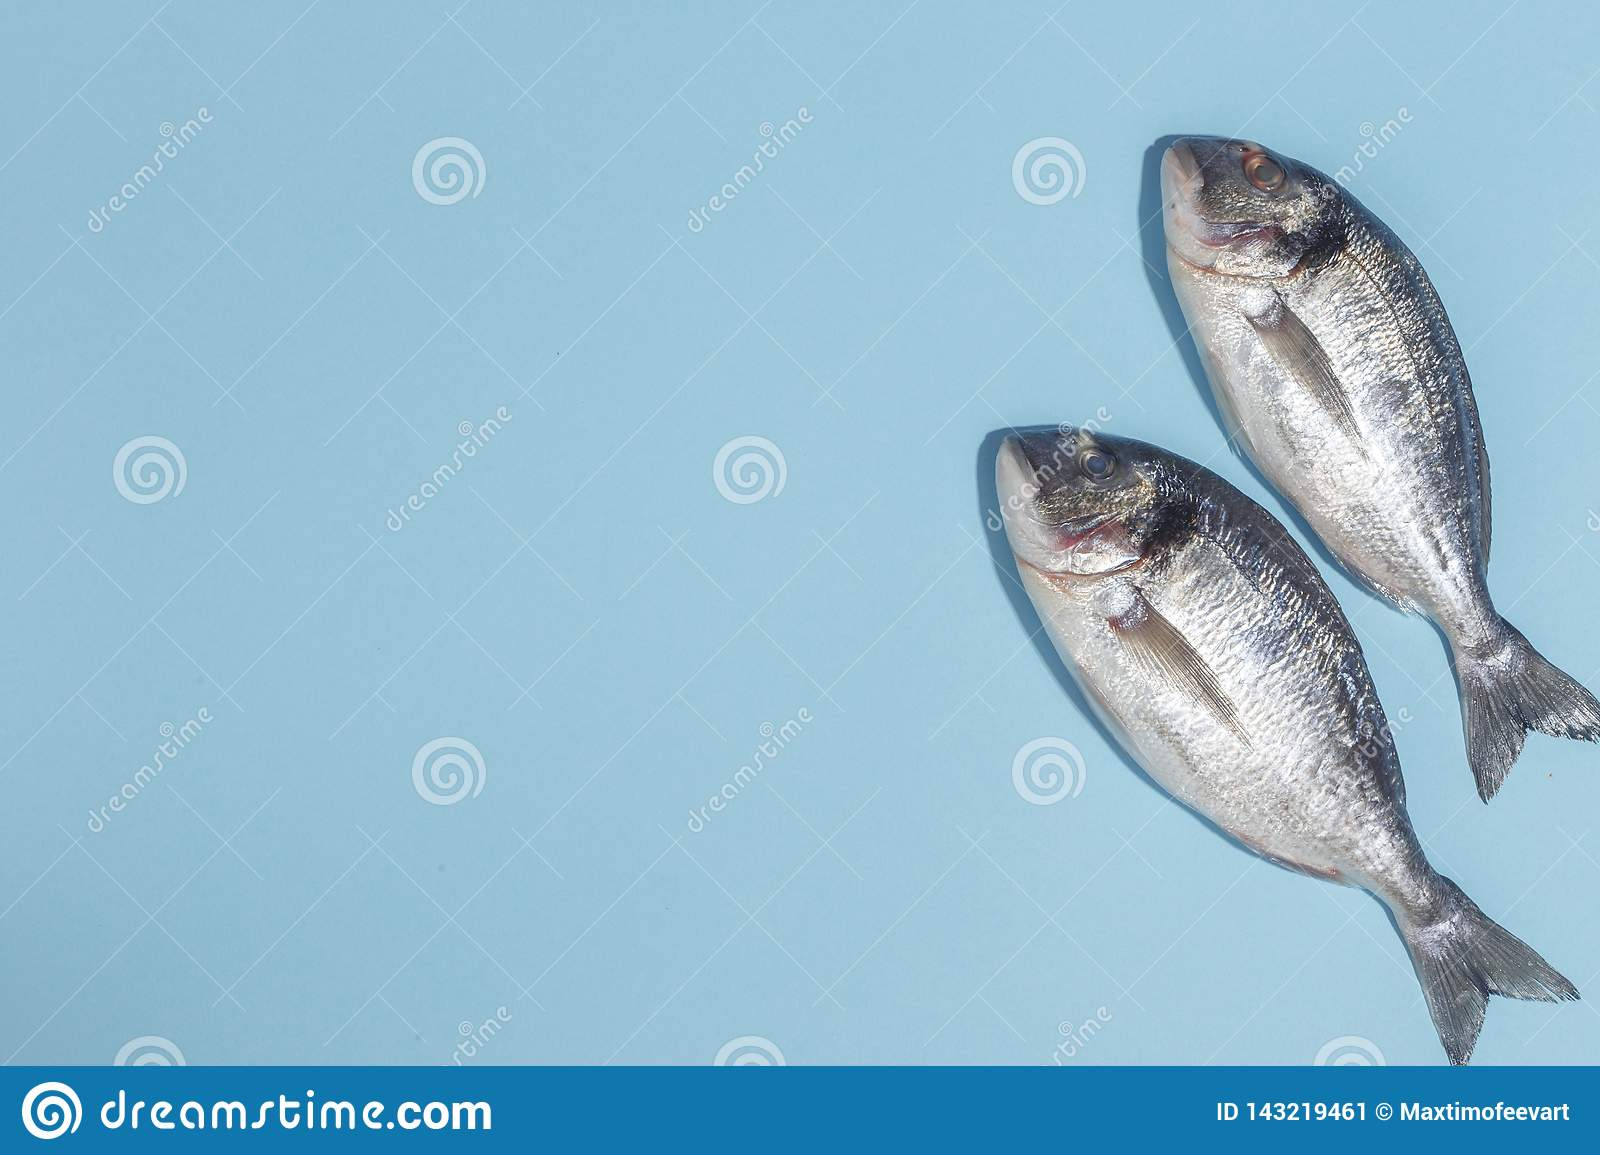 Raw dorada fish with spices, salt, lemon and herbs, rosemary on a ligth-blue background. Top view